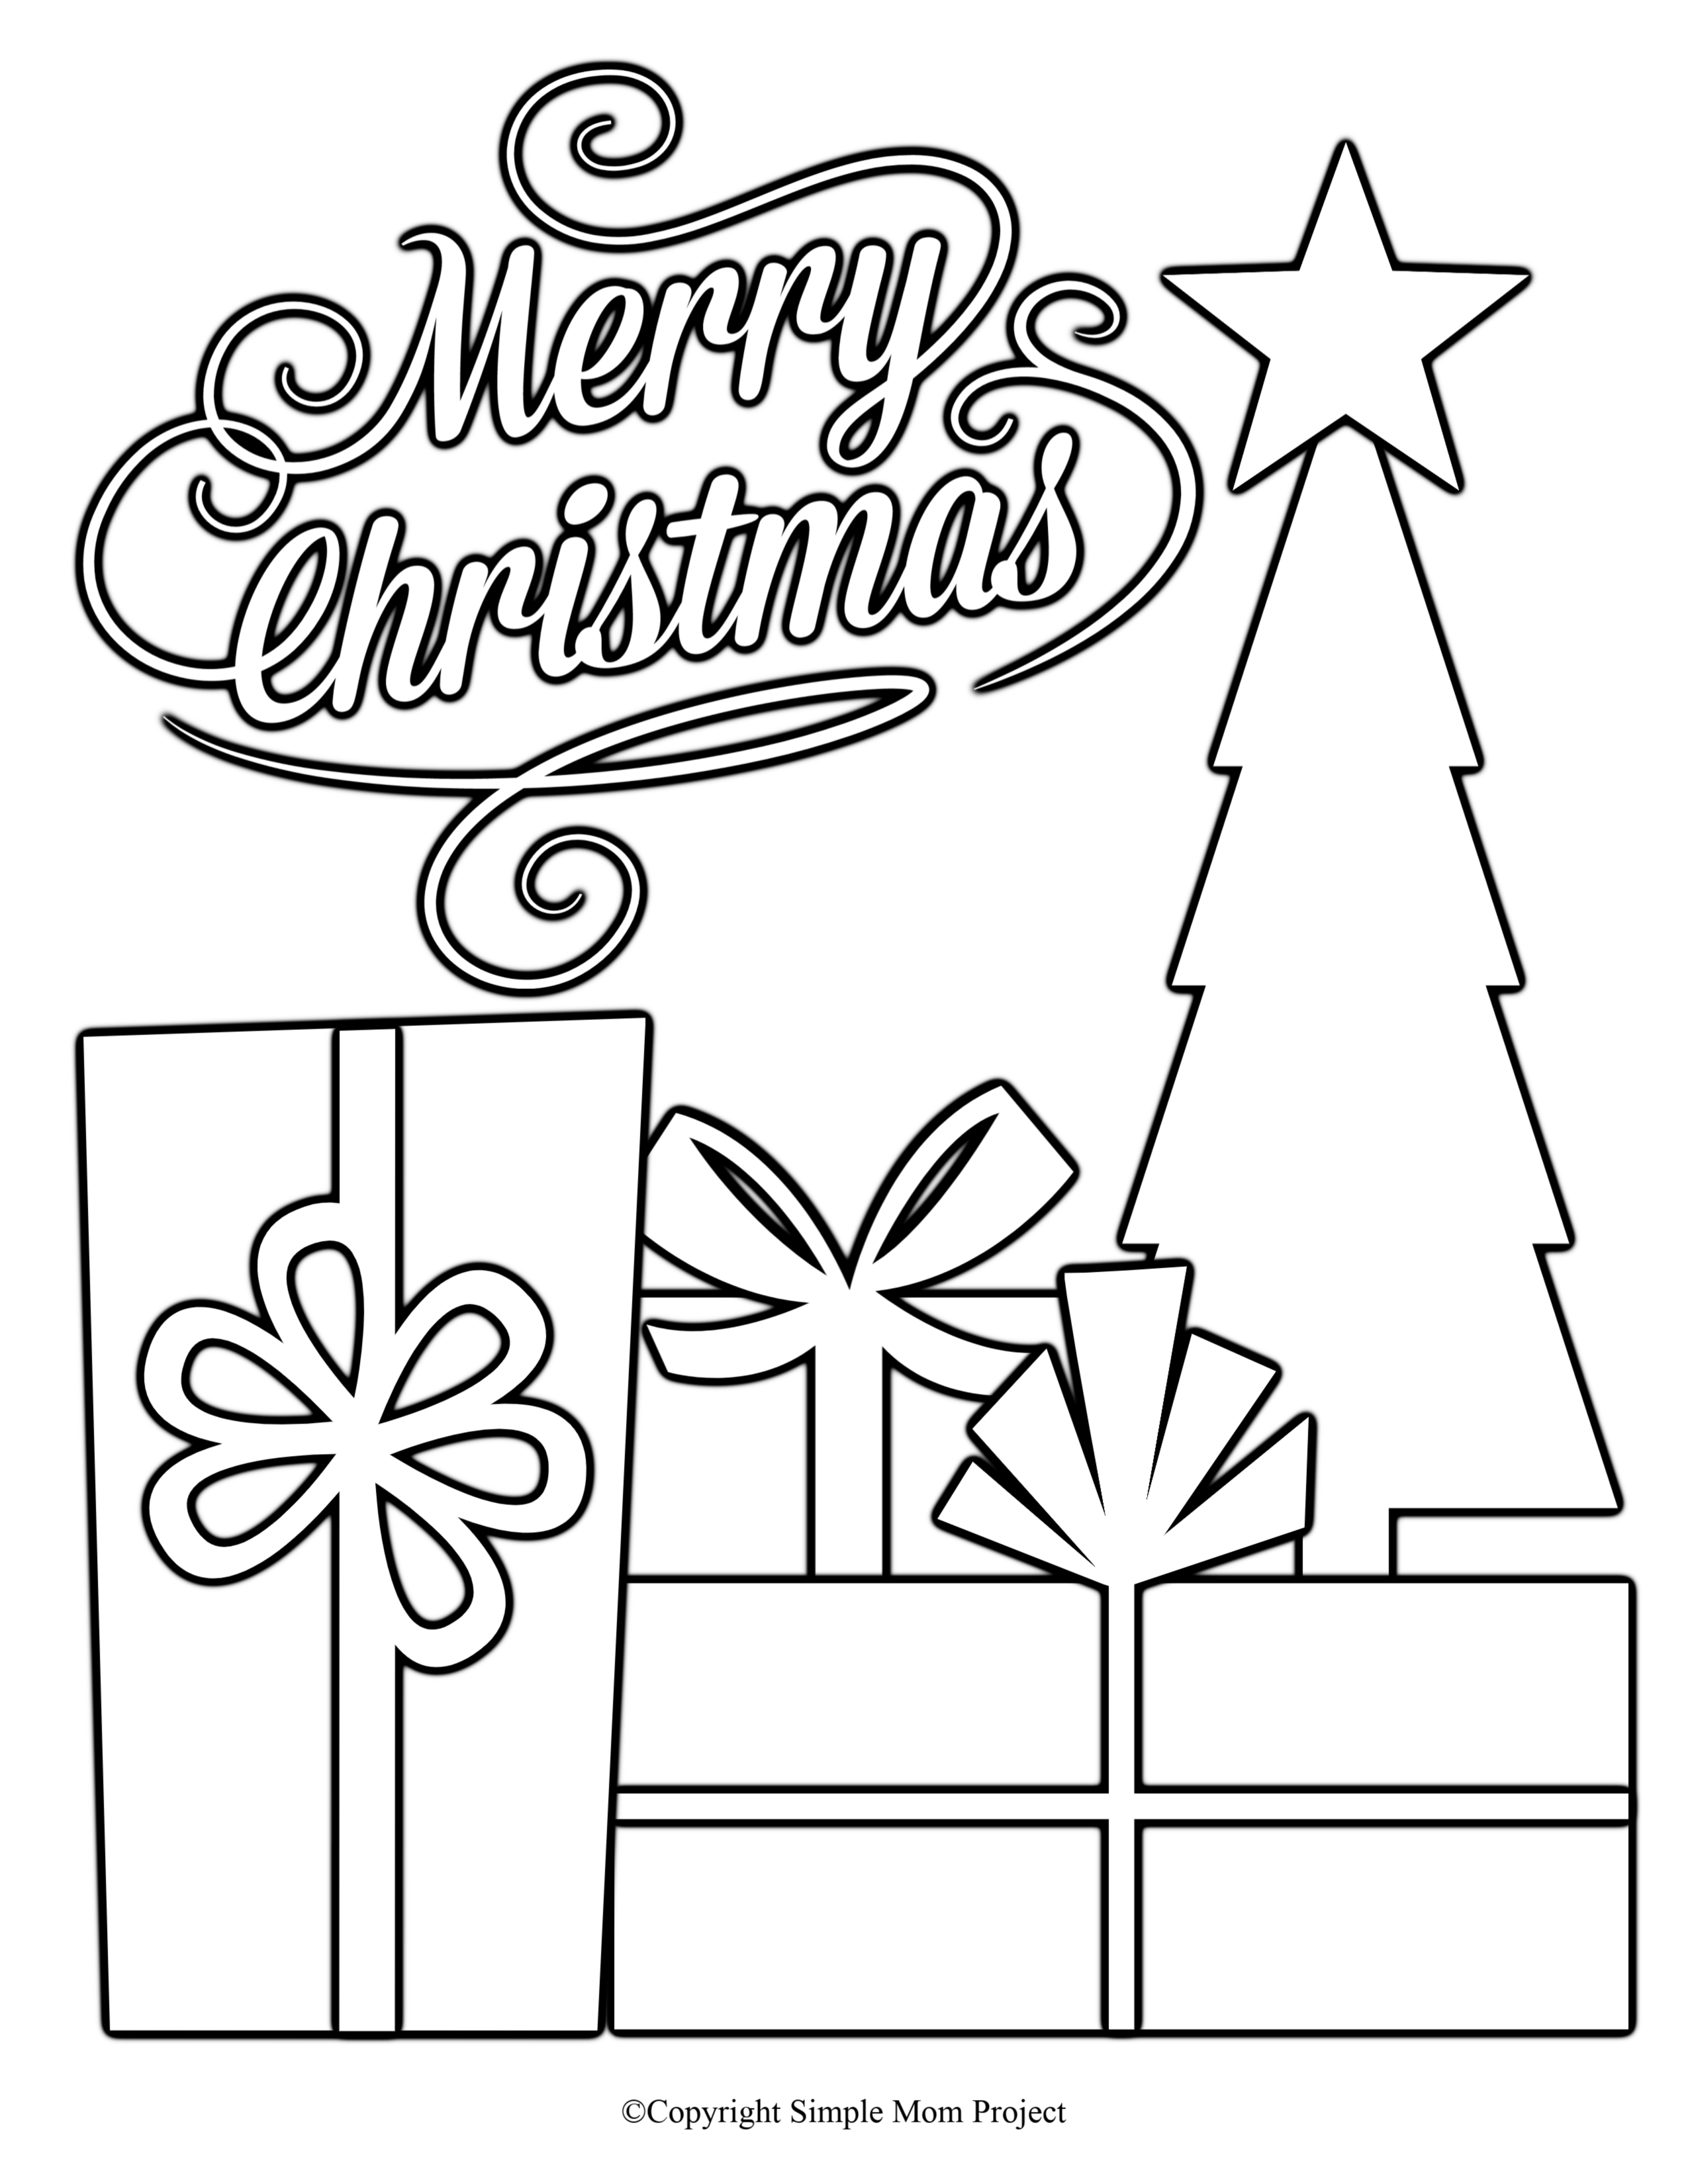 8 Free Printable Large Snowflake Templates Christmas Coloring Sheets Christmas Coloring Sheets For Kids Merry Christmas Coloring Pages